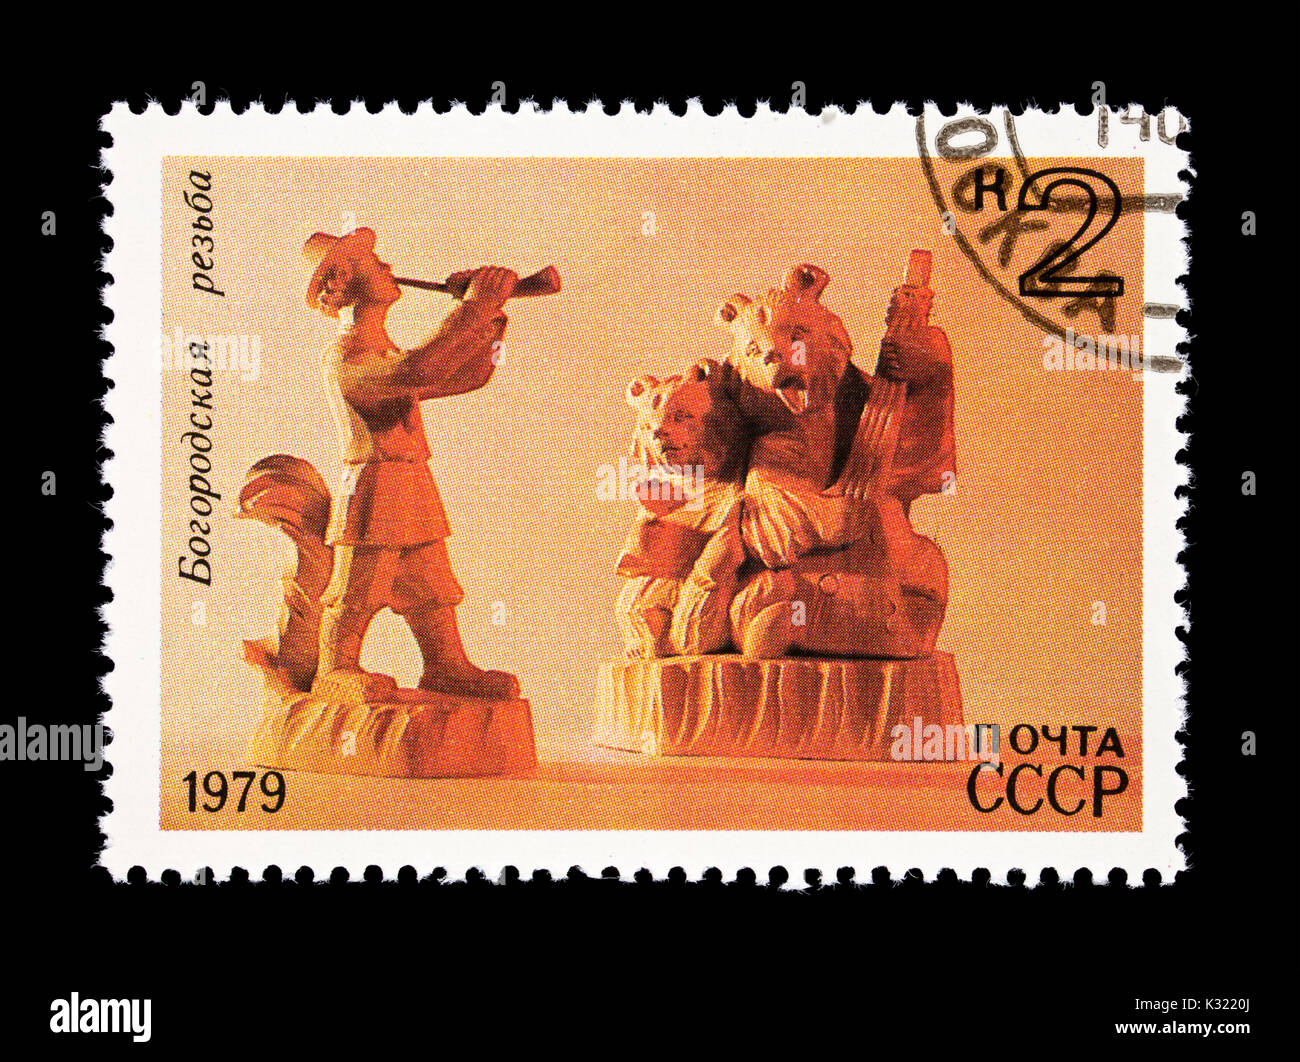 Postage stamp from the Soviet Union depicting a horn player and bear playing balalaika, examples of Bogorodsk wood carving. - Stock Image